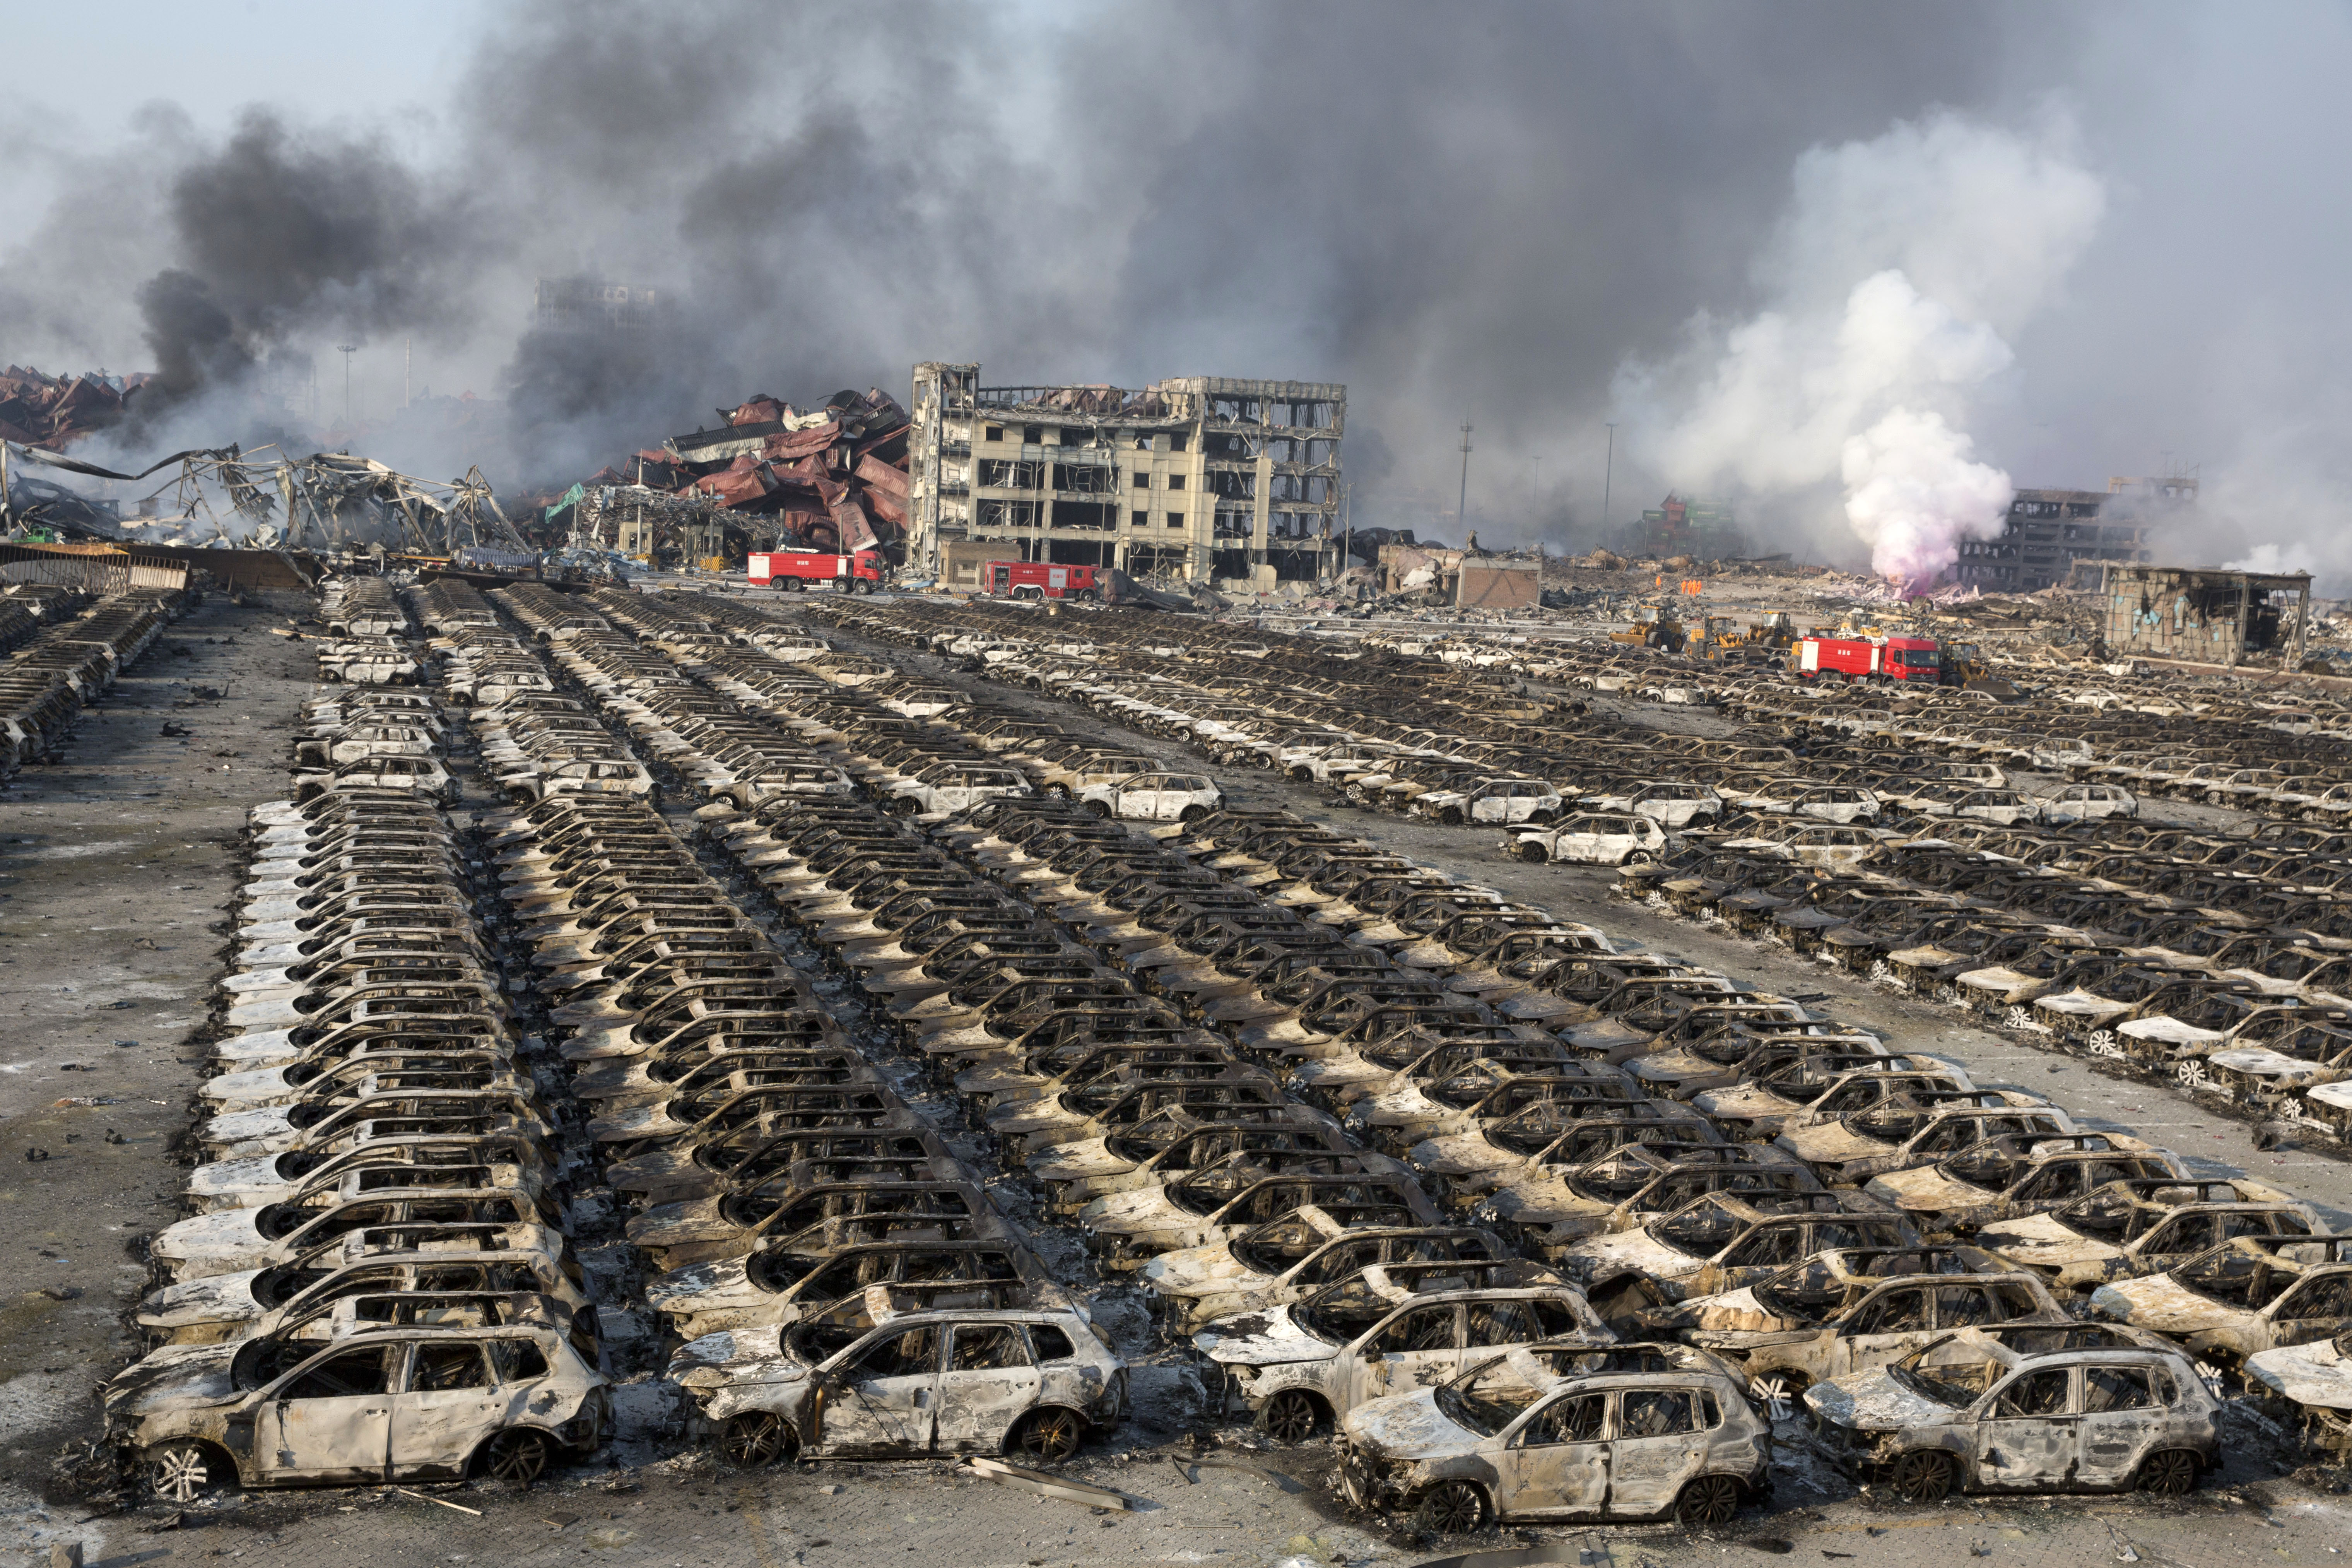 Smoke billows out from the site of an explosion that reduced a parking lot filled with new cars to charred remains at a warehouse in northeastern China's Tianjin municipality, Aug. 13, 2015.